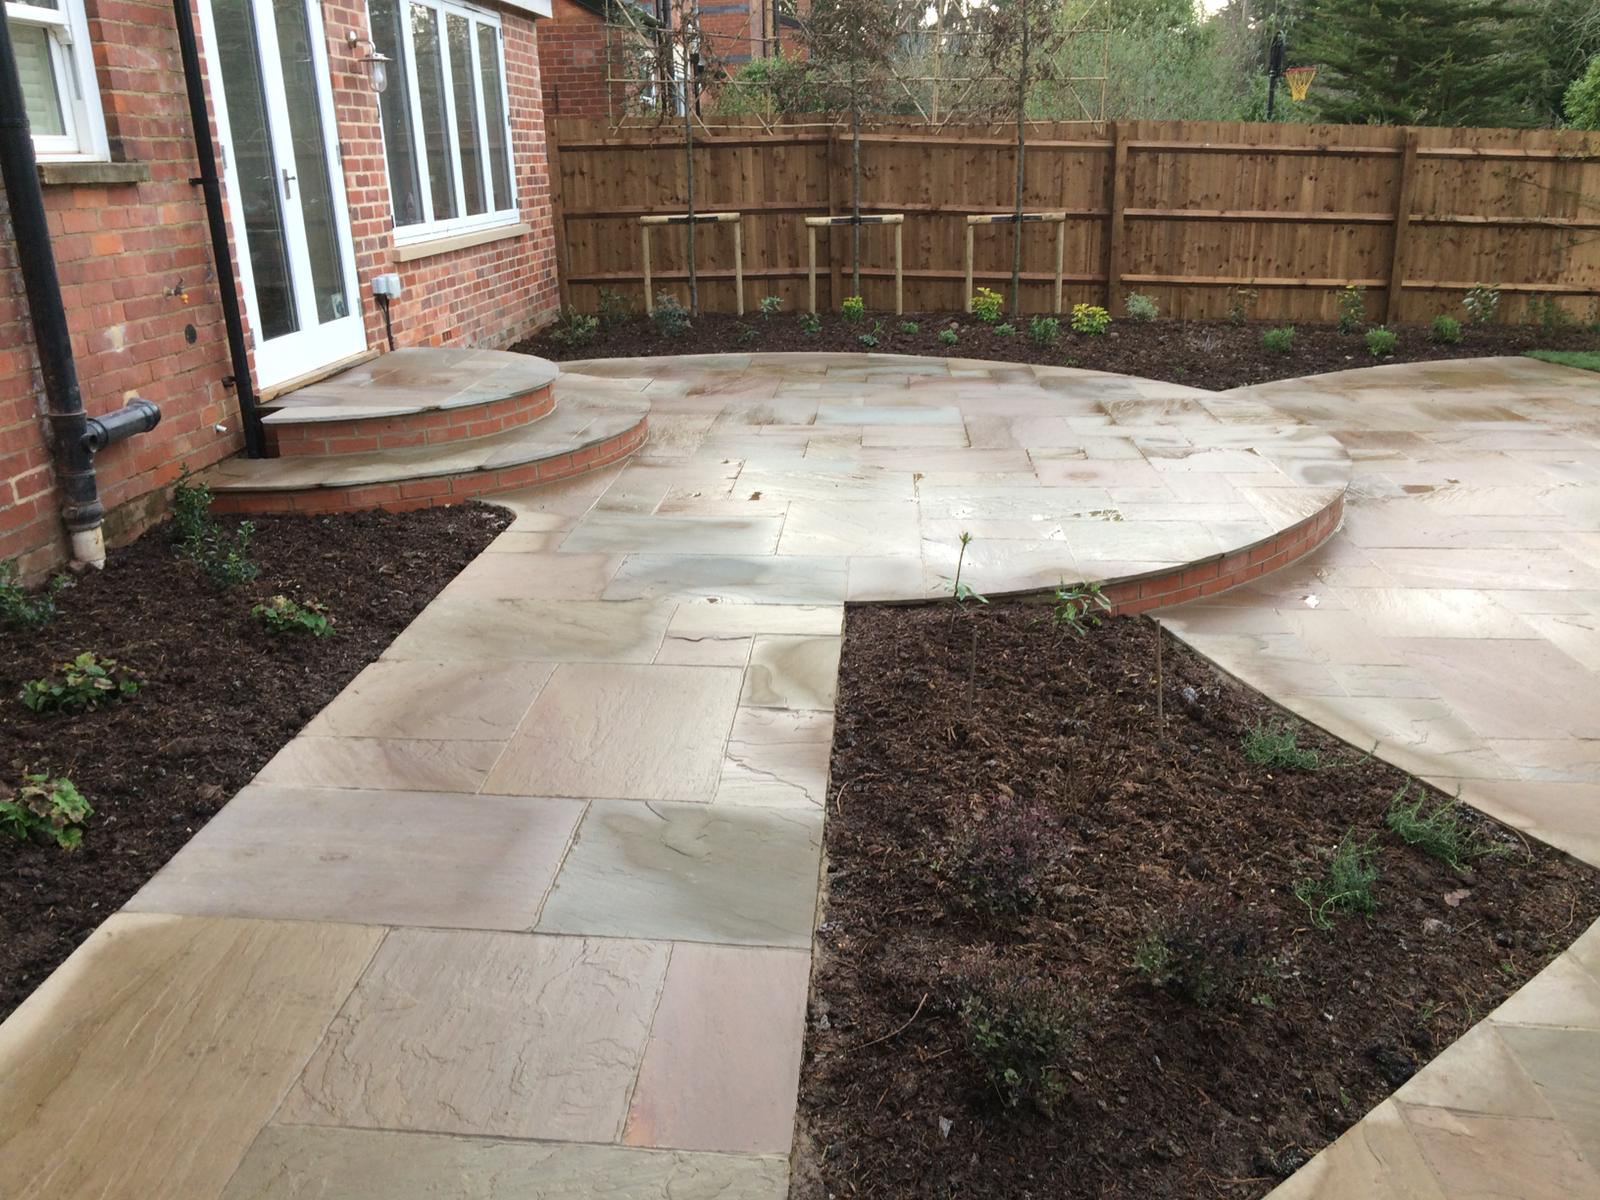 Hard landscaping - patio design - Landscapes portfolio by Martyn Powell Landscapes in Cheltenham